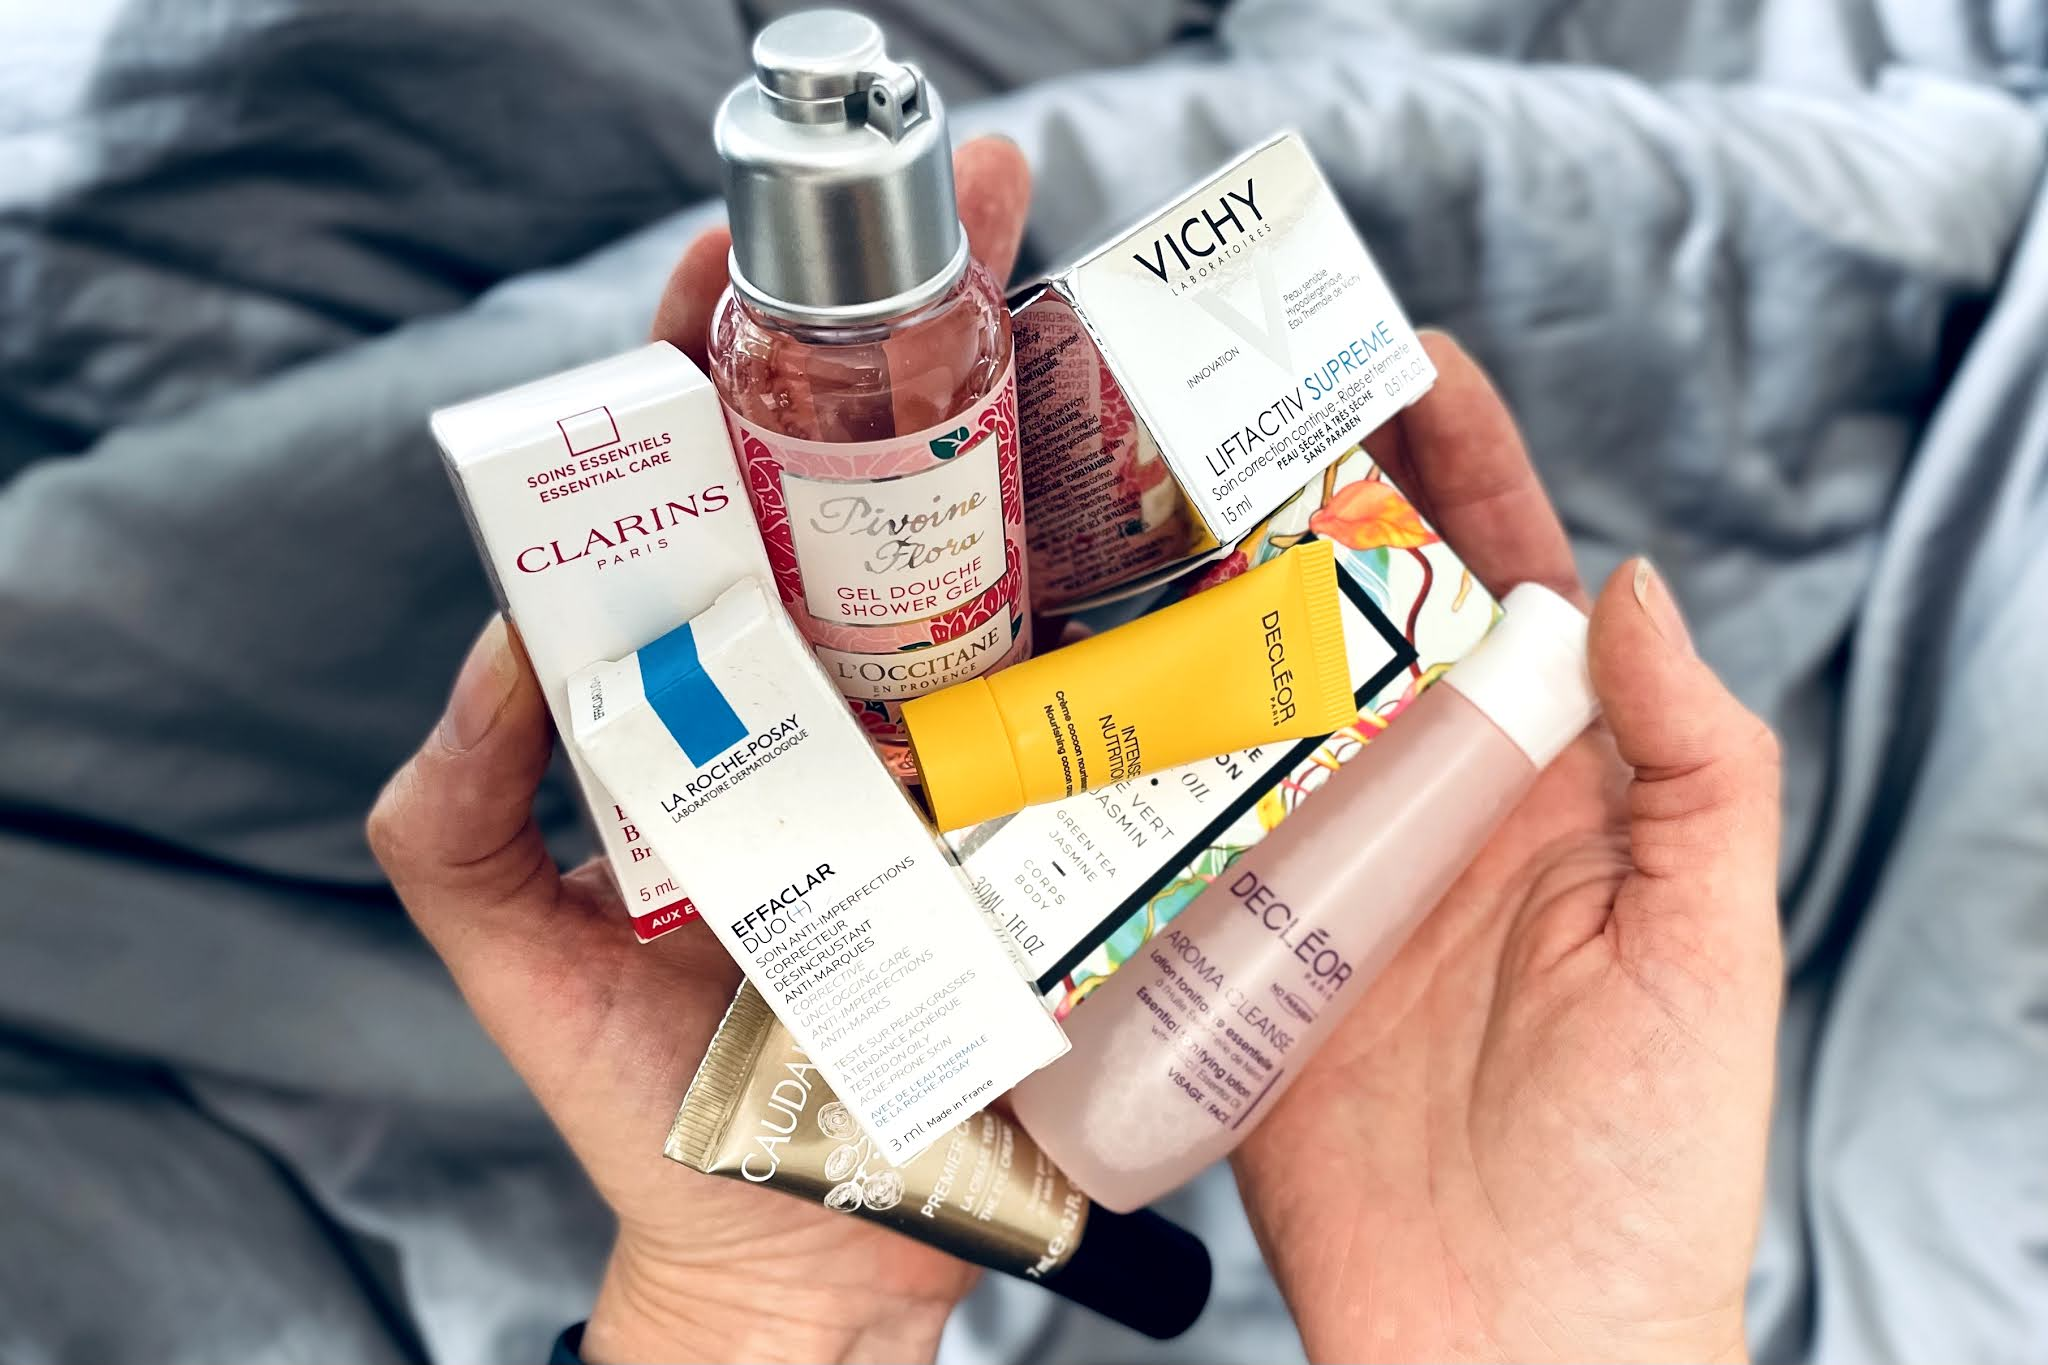 A selection of sample size skincare and beauty products from French companies including well known brands and hidden gems